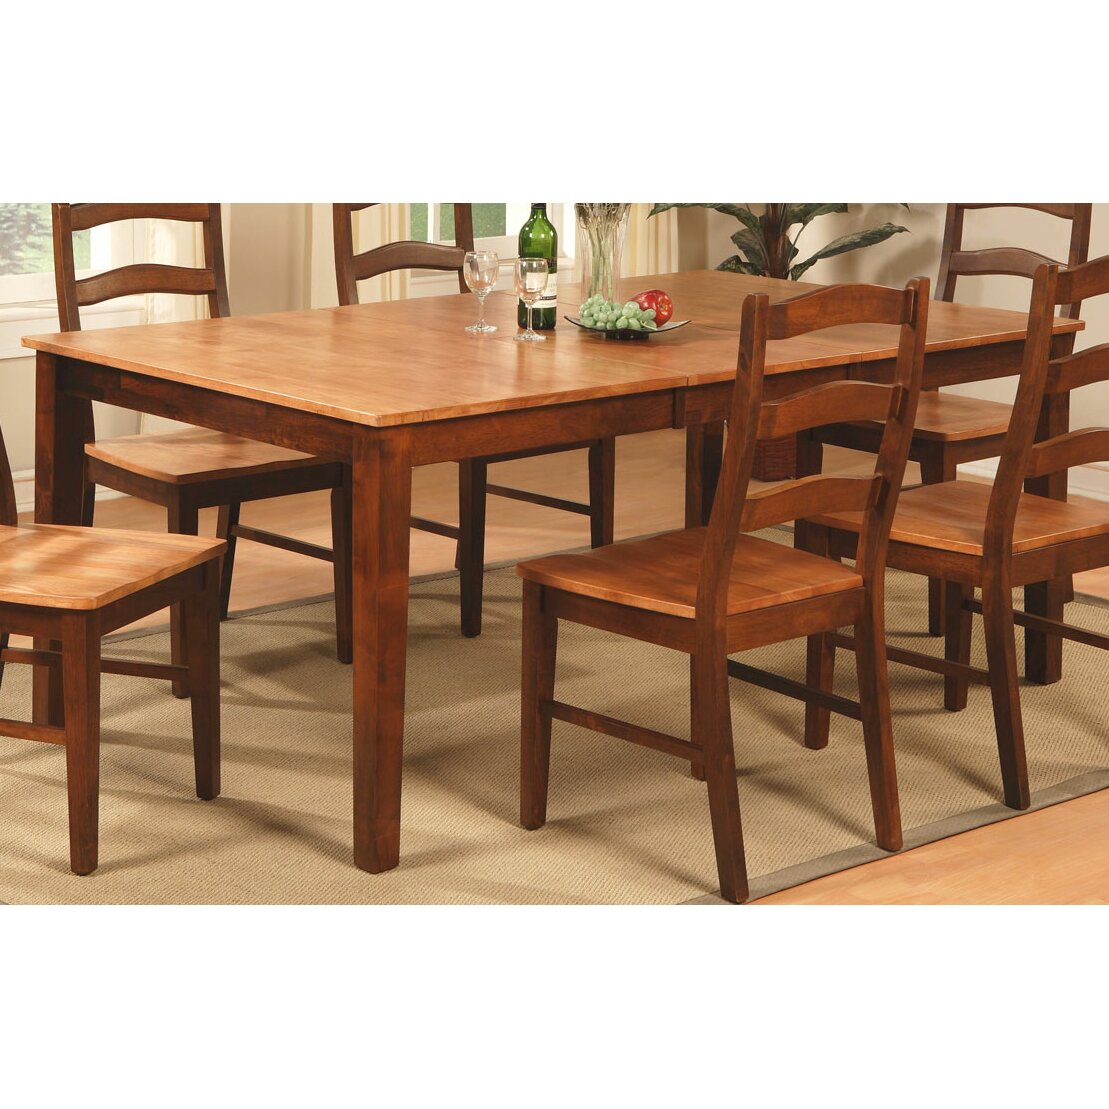 East west henley 9 piece dining set reviews wayfair for Dining room furniture 9 piece